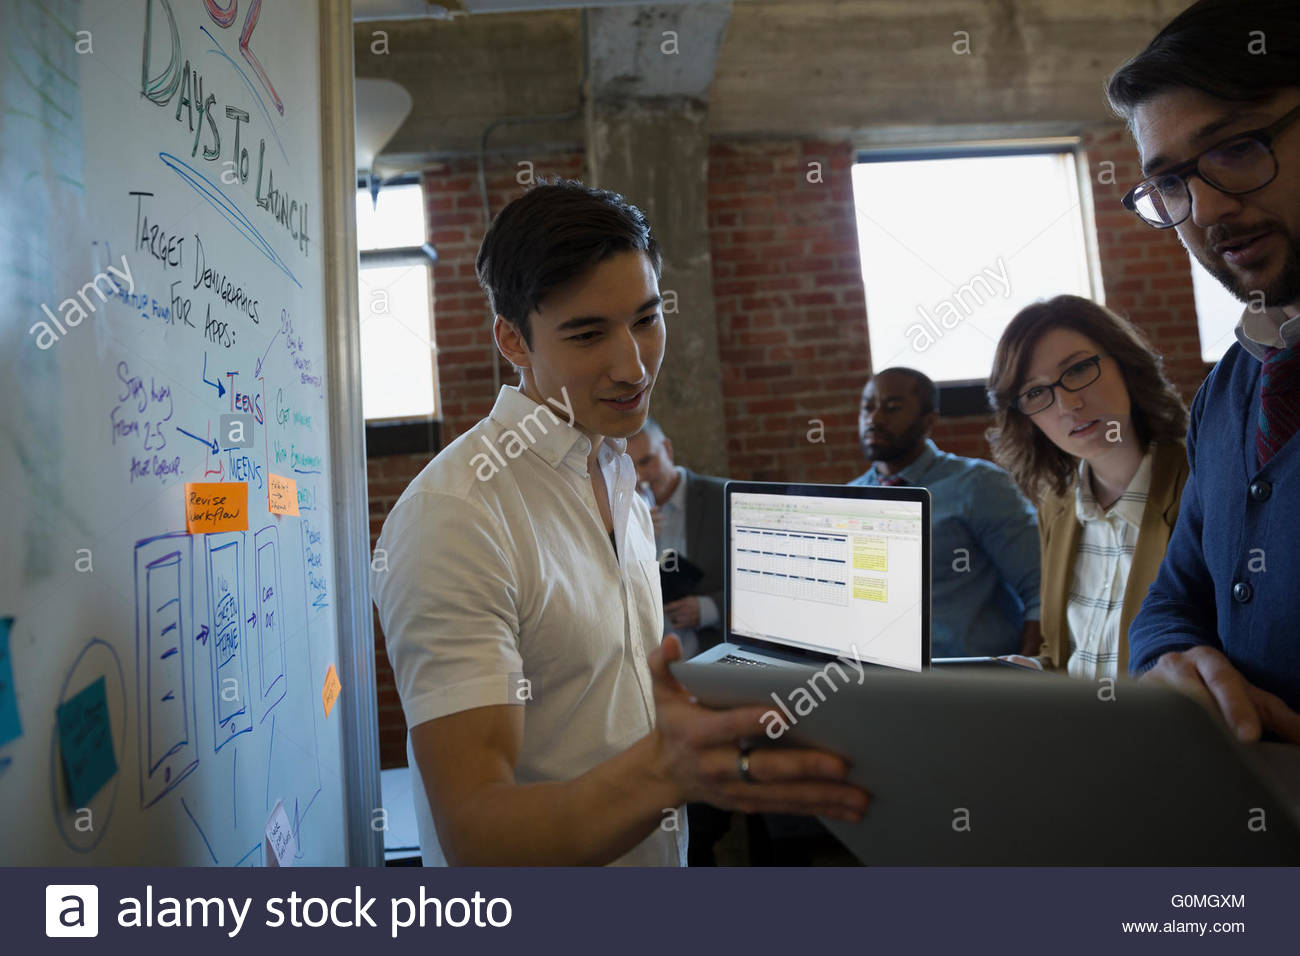 Entrepreneurs brainstorming launch campaign at whiteboard - Stock Image